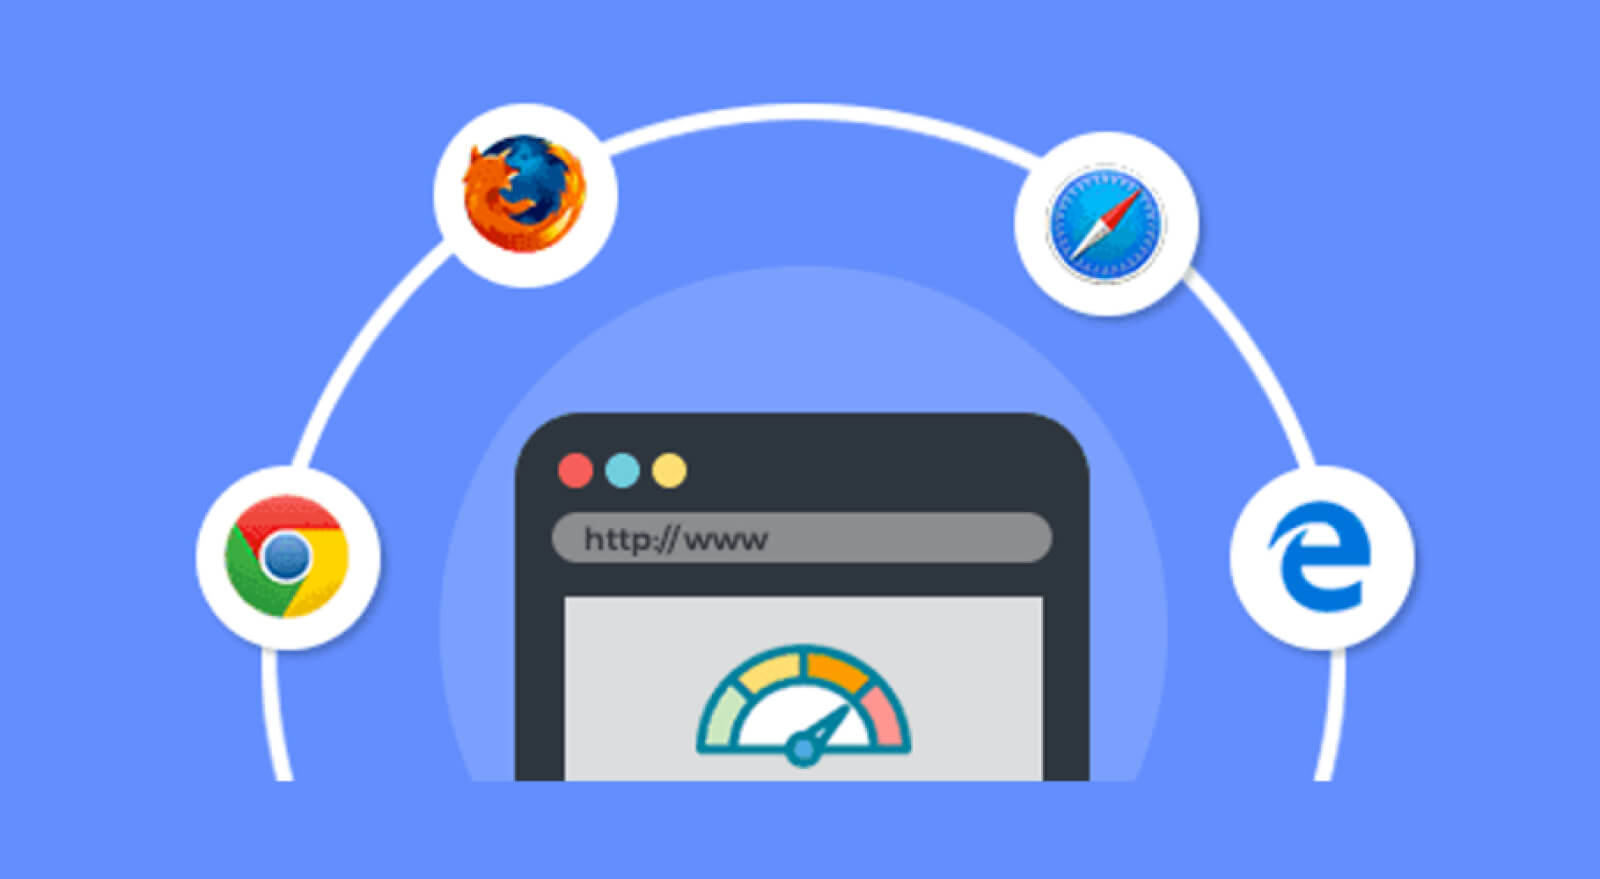 How to Clean Browser Cache, Cookies, and History?